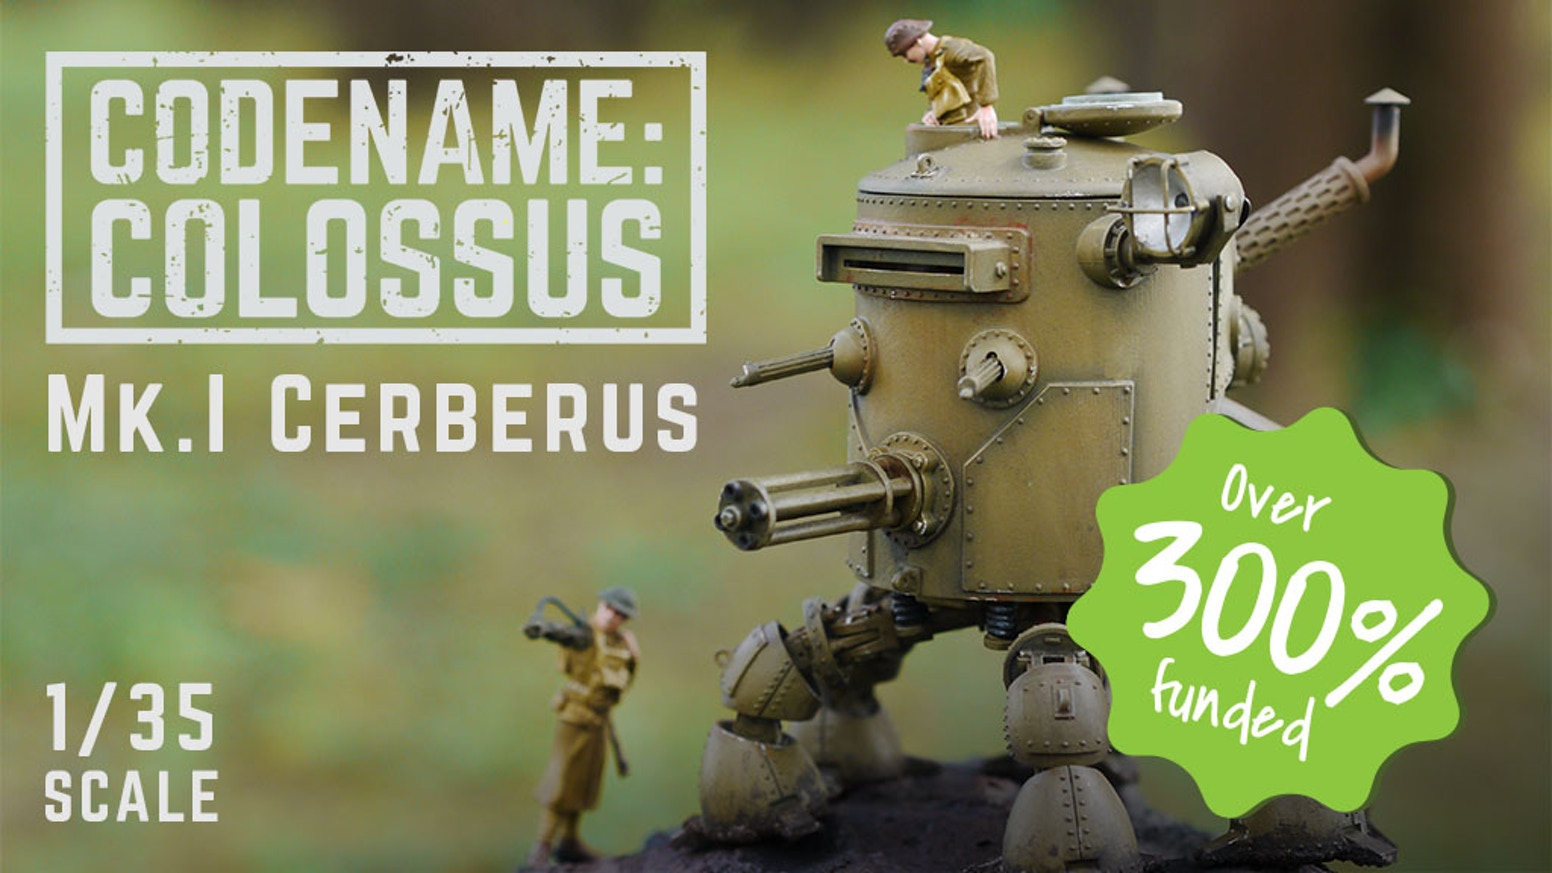 The Mk.I Cerberus is a 1/35 scale mechanized dieselpunk walking tank resin scale model kit based in the world of Codename Colossus